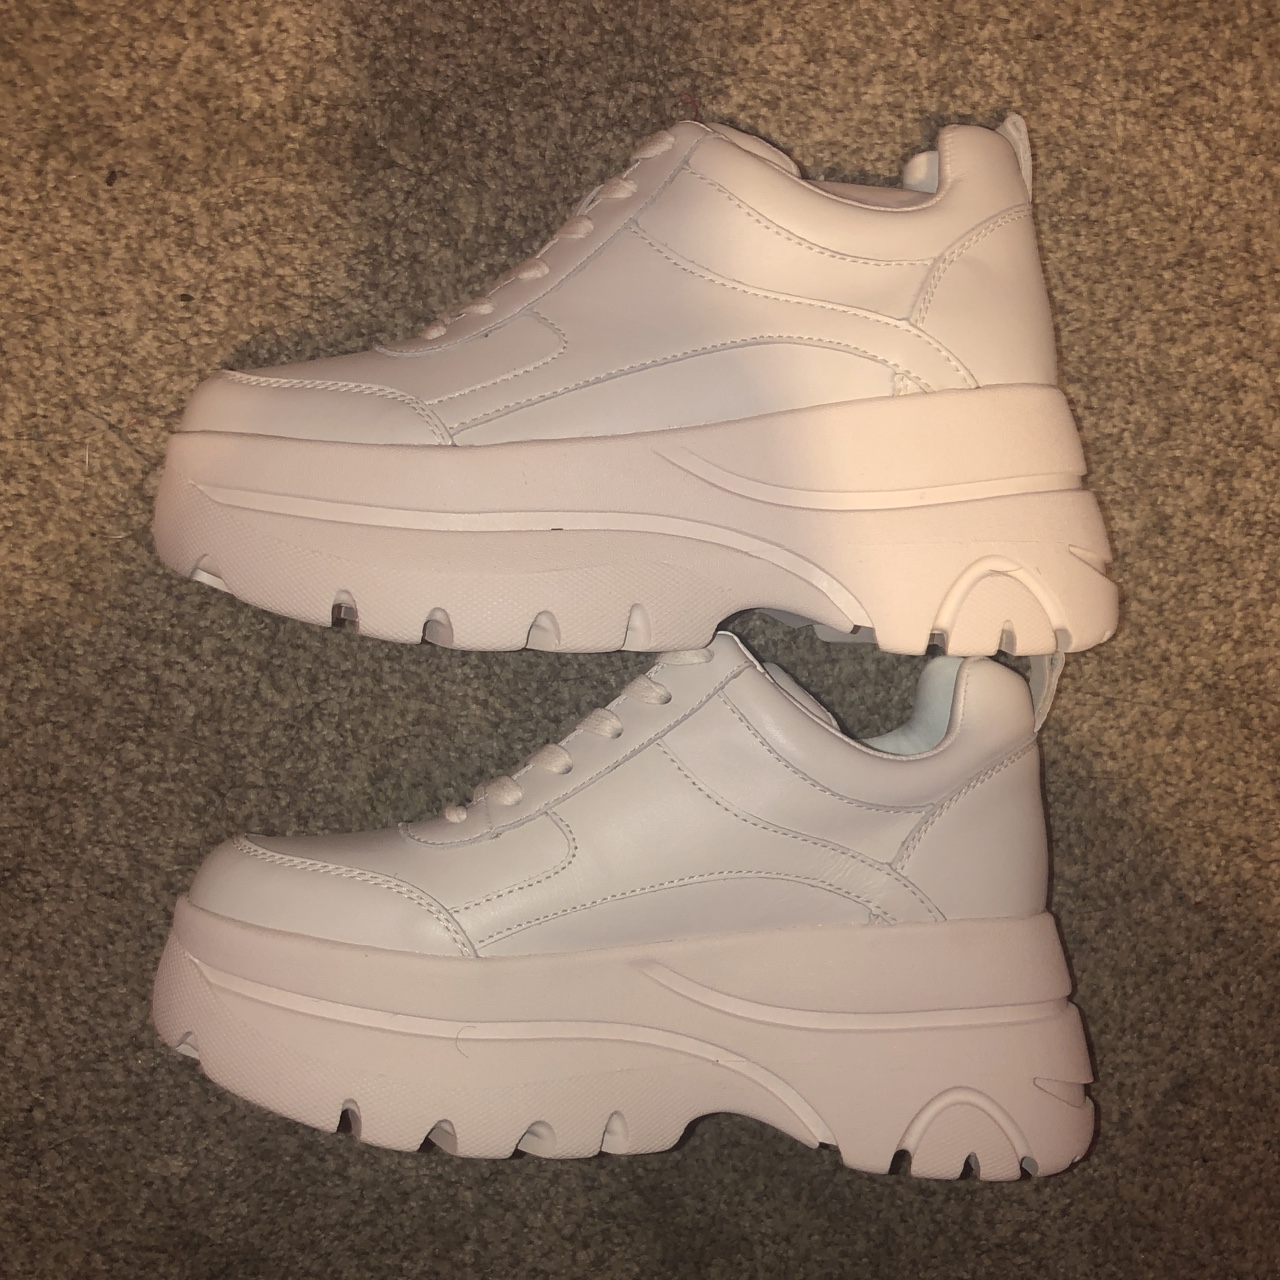 CHUNKY PLATFORM SNEAKERS FROM STEVEN